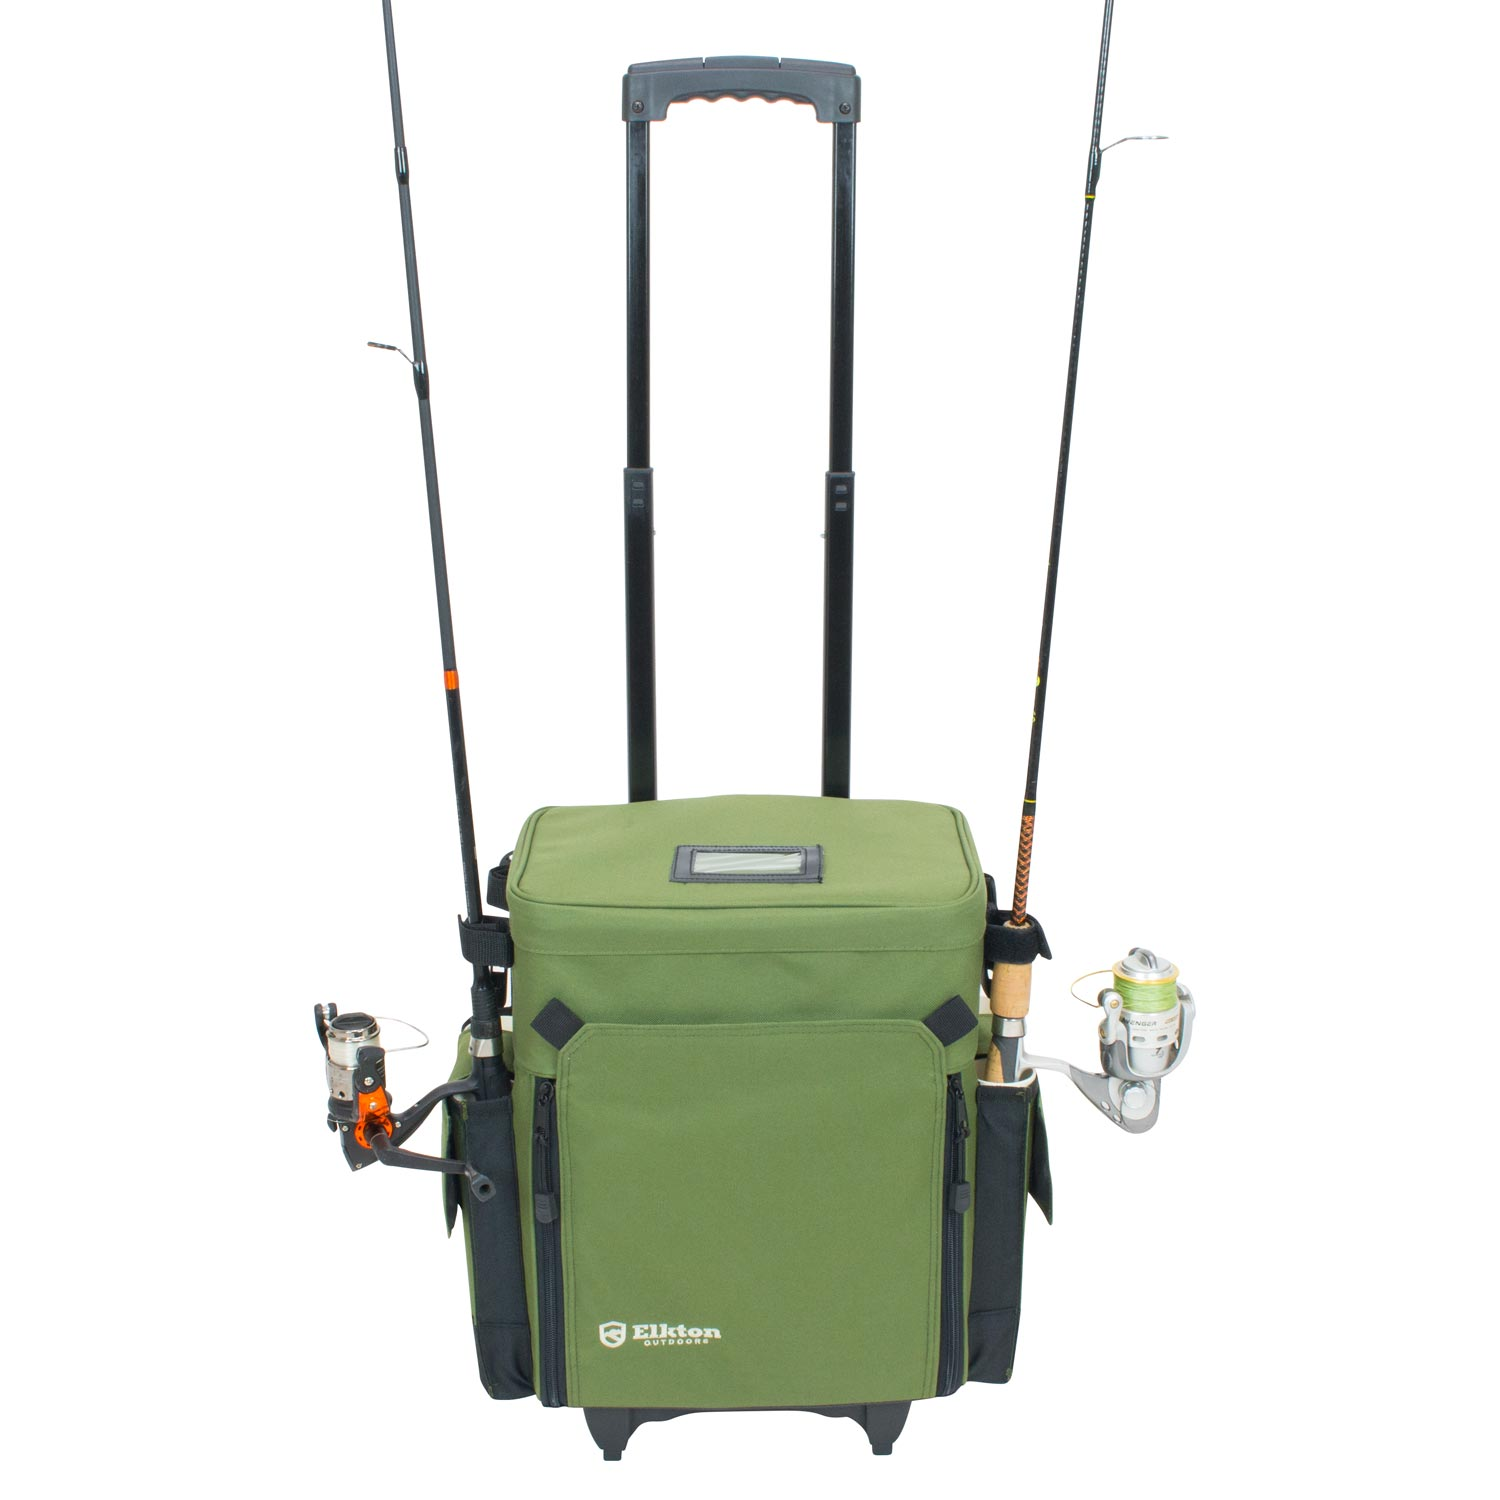 Elkton Outdoors Rolling Tackle Box Green   L 15.7 x W 9.6 x H 18.5 inches   11 pounds   Waterproof   5 Retractable... by Elkton Outdoors